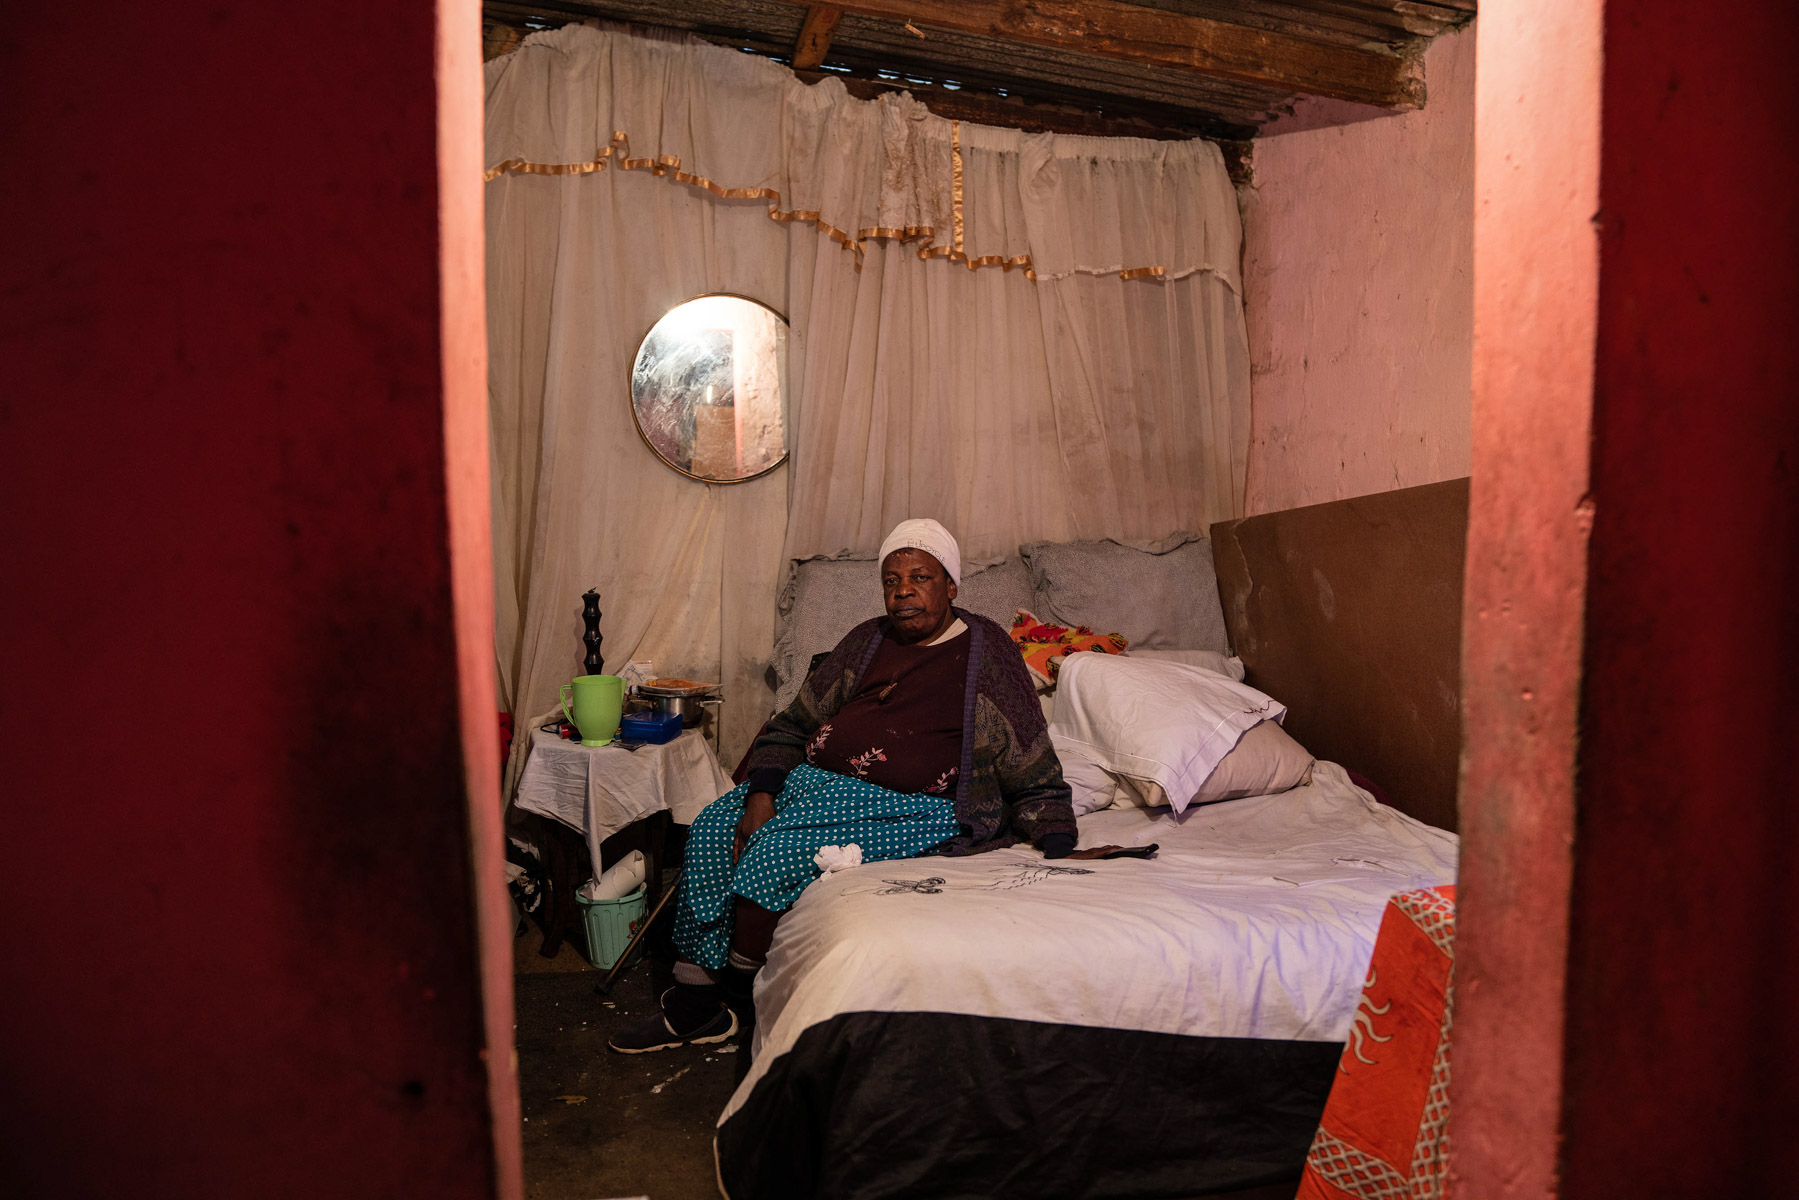 8 April 2020: Ruth Sithole in her tiny home in Alexandra, where she has lived for 30 years. Her husband died in a fire there a couple of years ago.